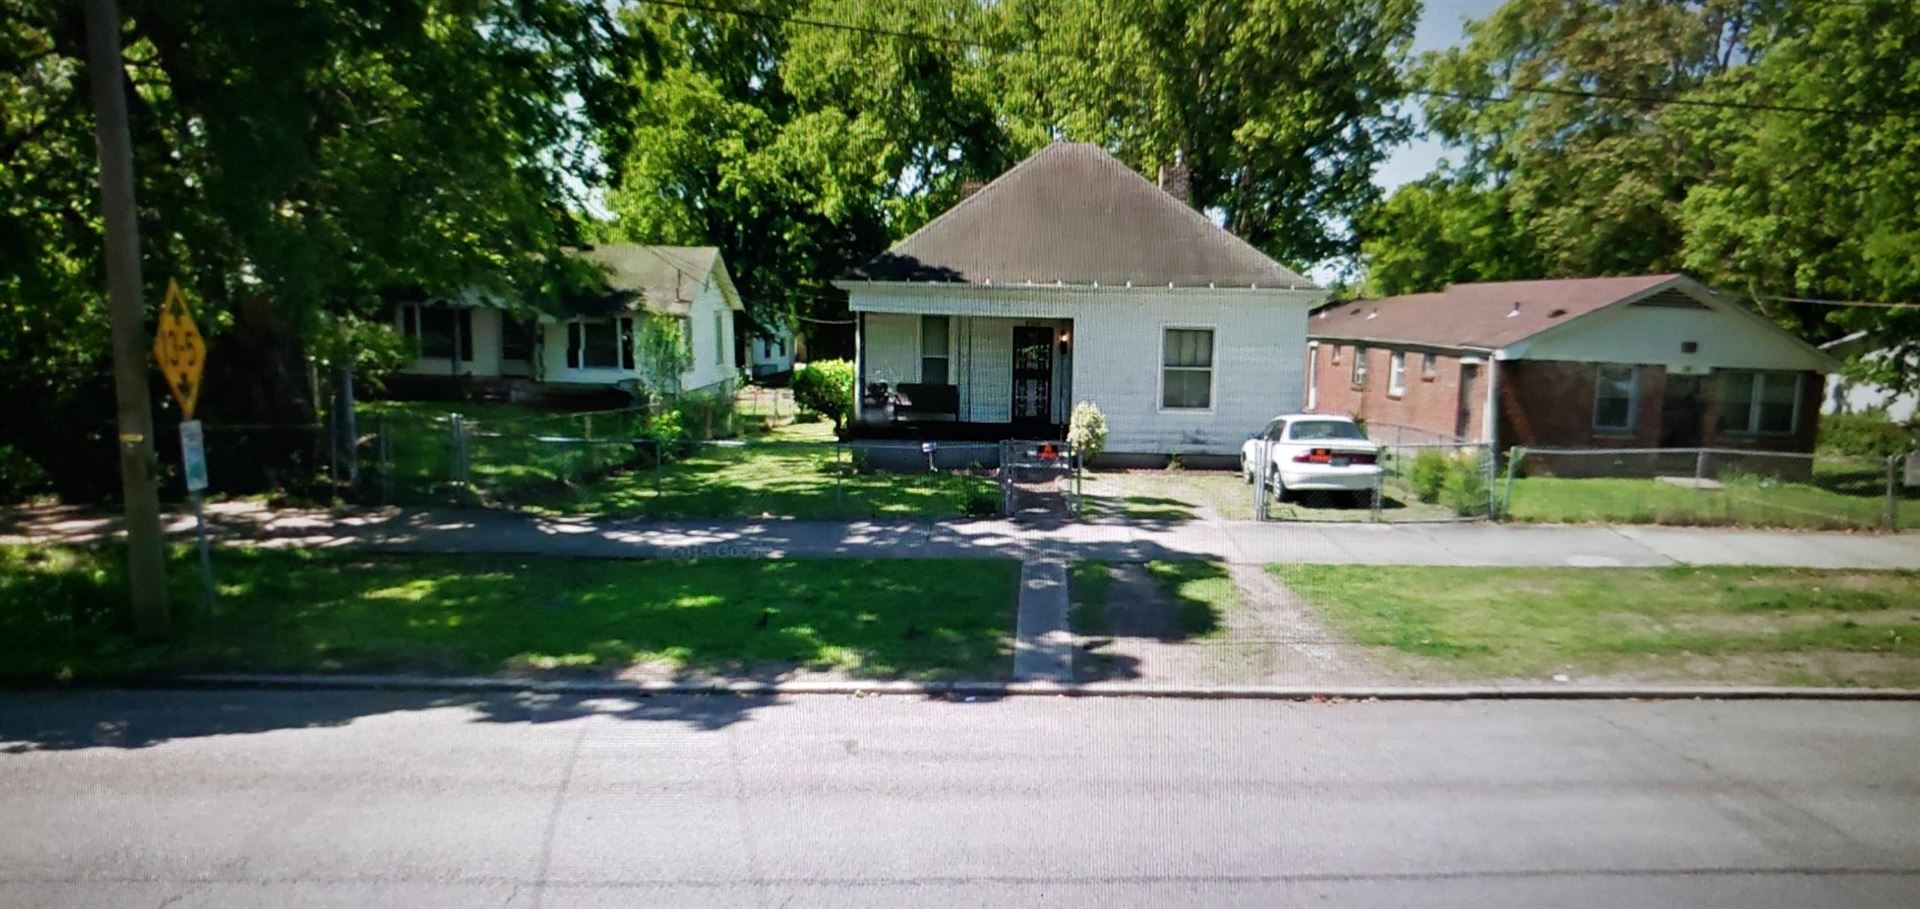 Photo of 1613 Arthur Ave, Nashville, TN 37208 (MLS # 2233960)